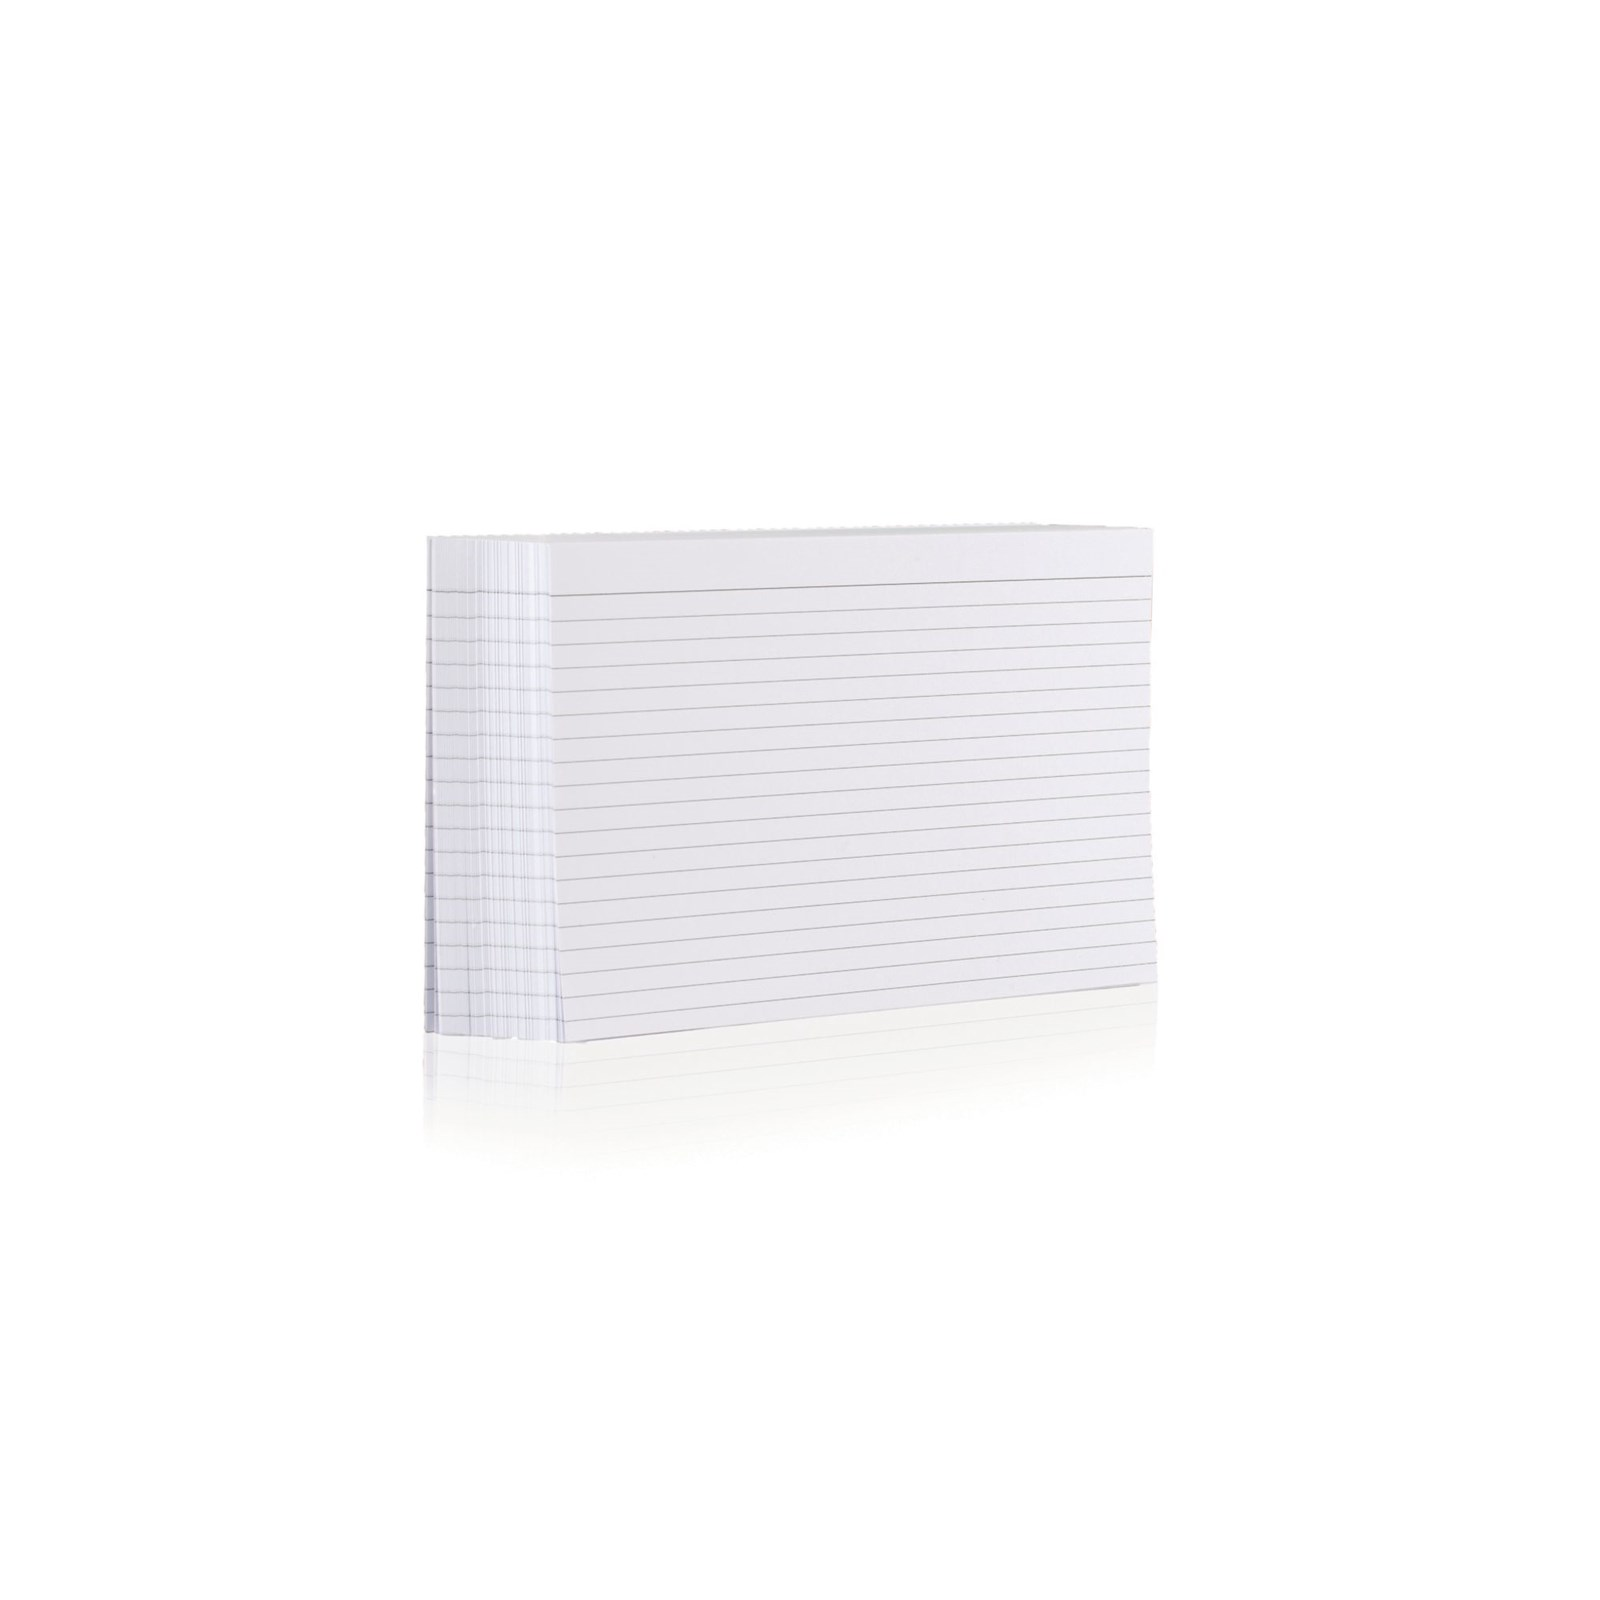 Record Card 203 x 127mm White - Pack of 100